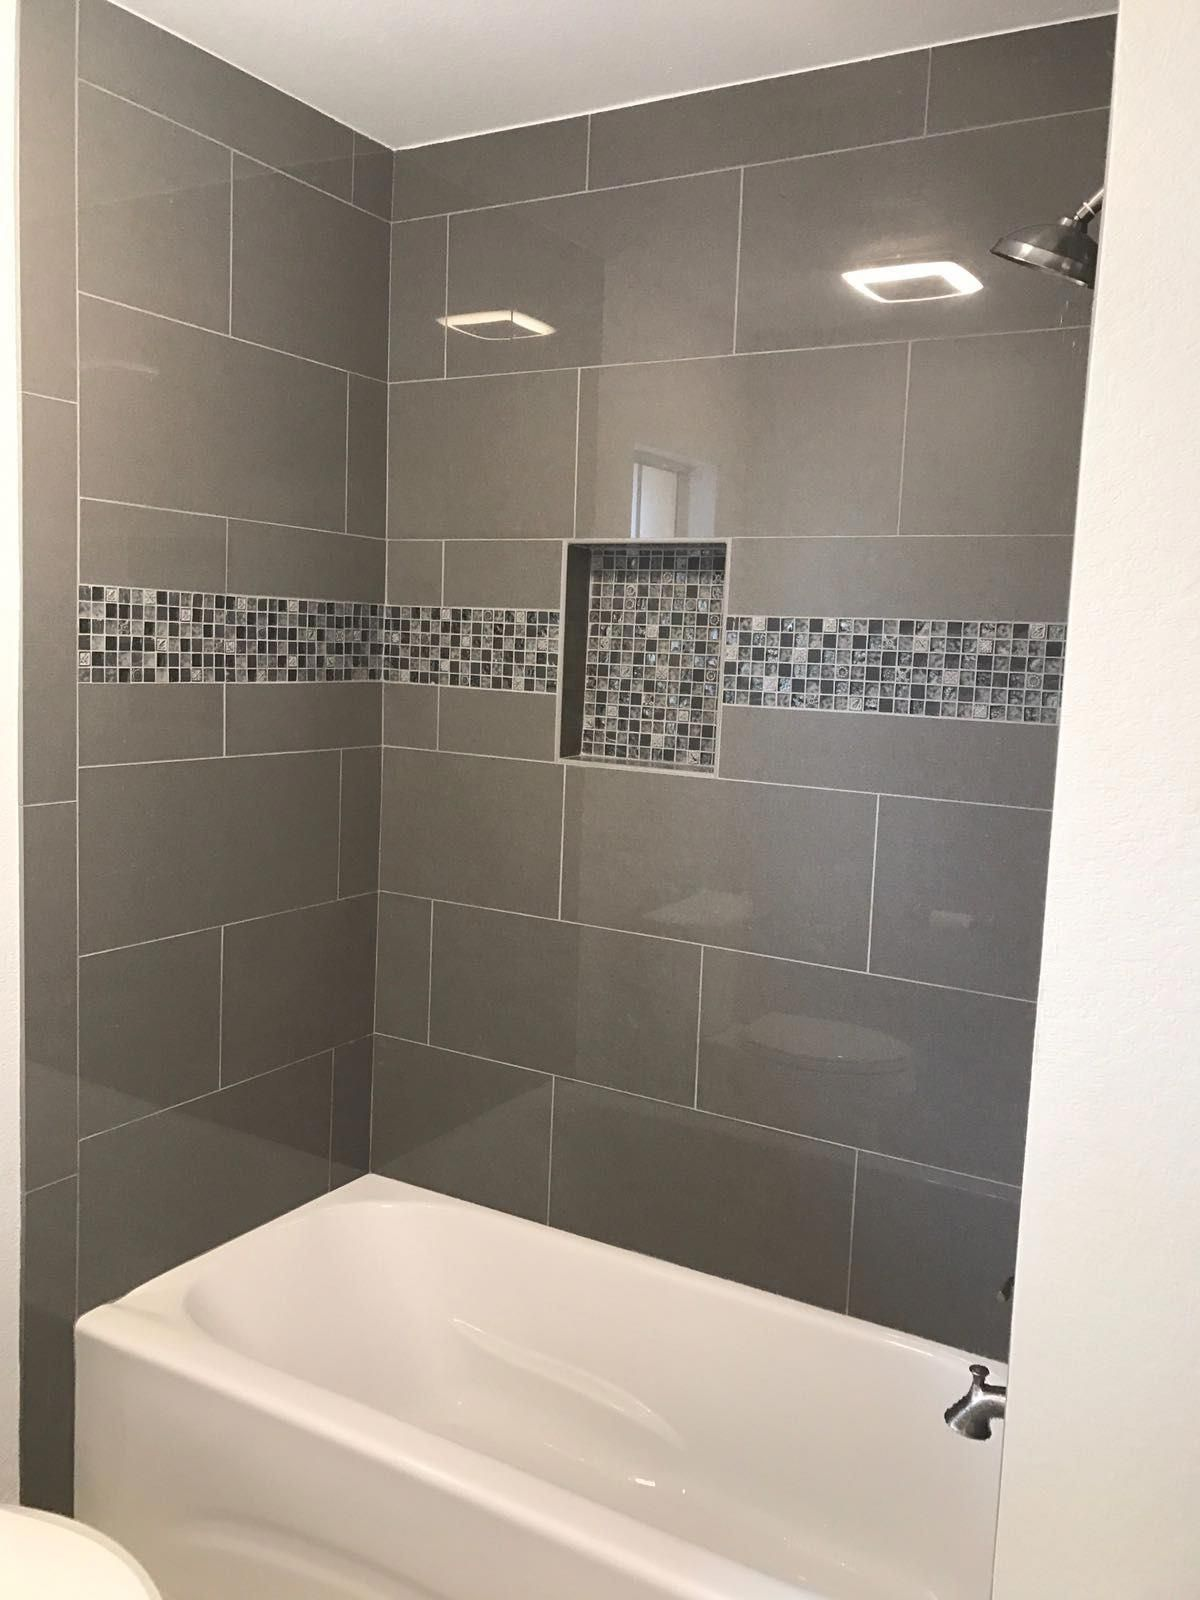 Great Innovative Remodeling Ideas From Home Masters Intl For Free Estimates Visit Our Showroom 2232 S Vineyard Ave Ontario Ca 91761 Bathroom Remodel Master